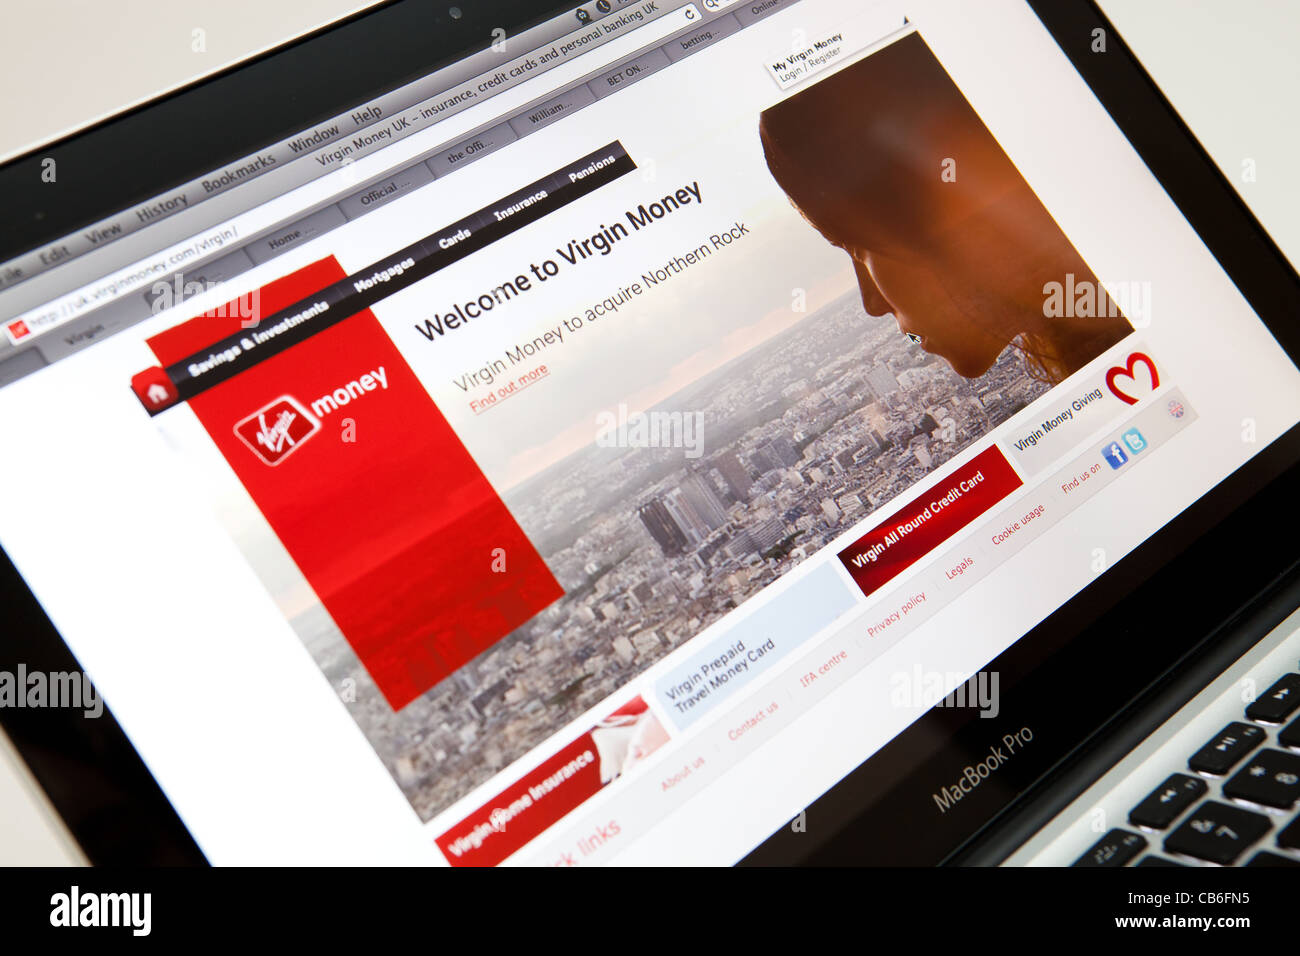 Virgin Money Website Screen shot of web page - Stock Image